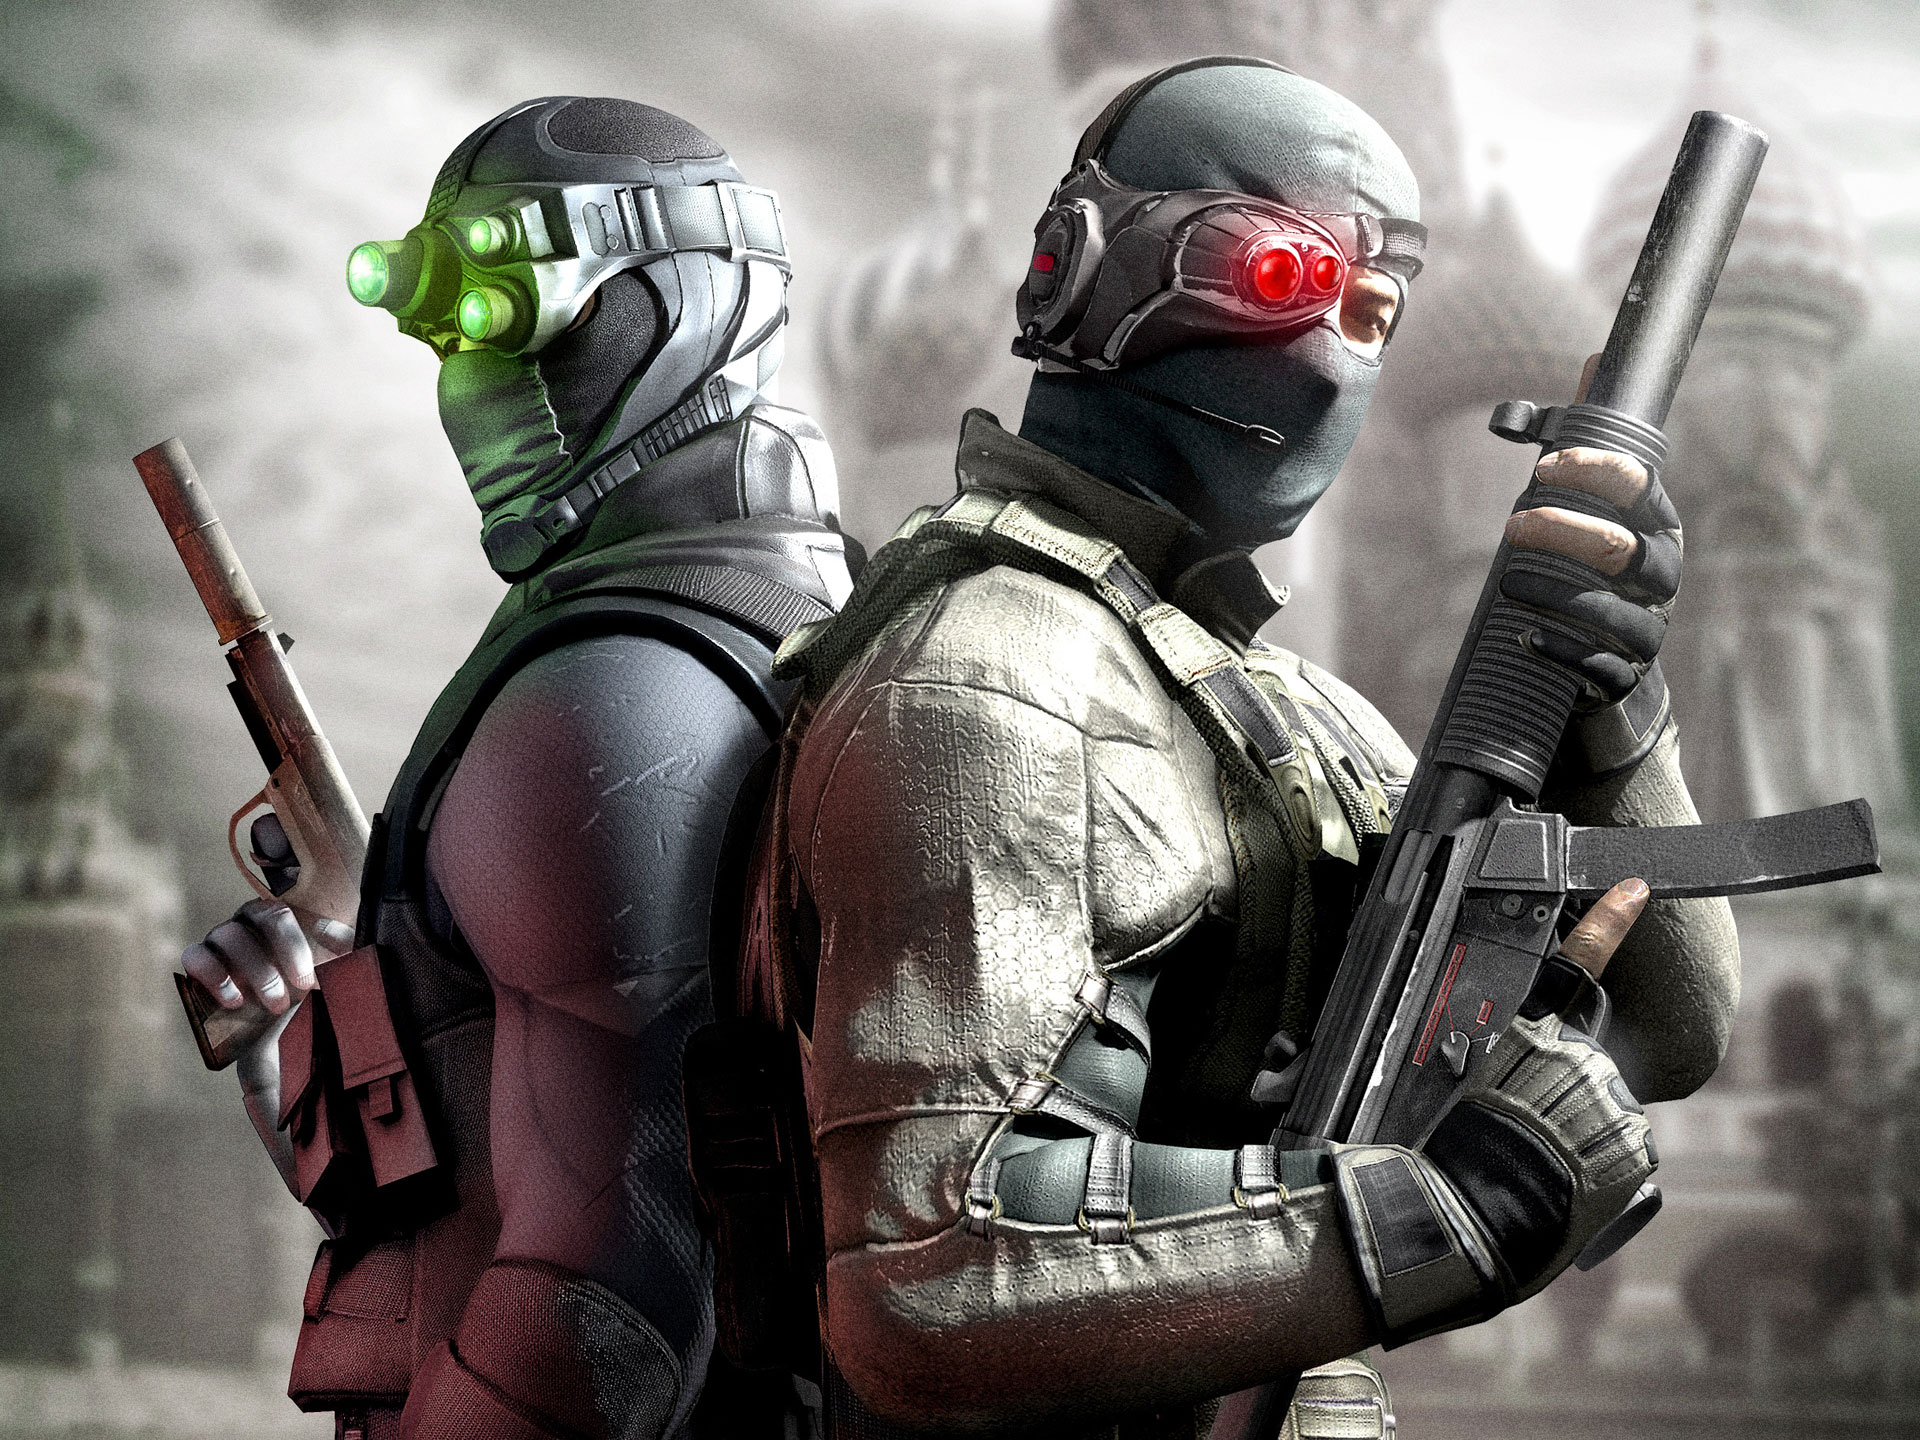 Tom Clancys Splinter Cell Conviction Wallpapers HD Wallpapers 1920x1440